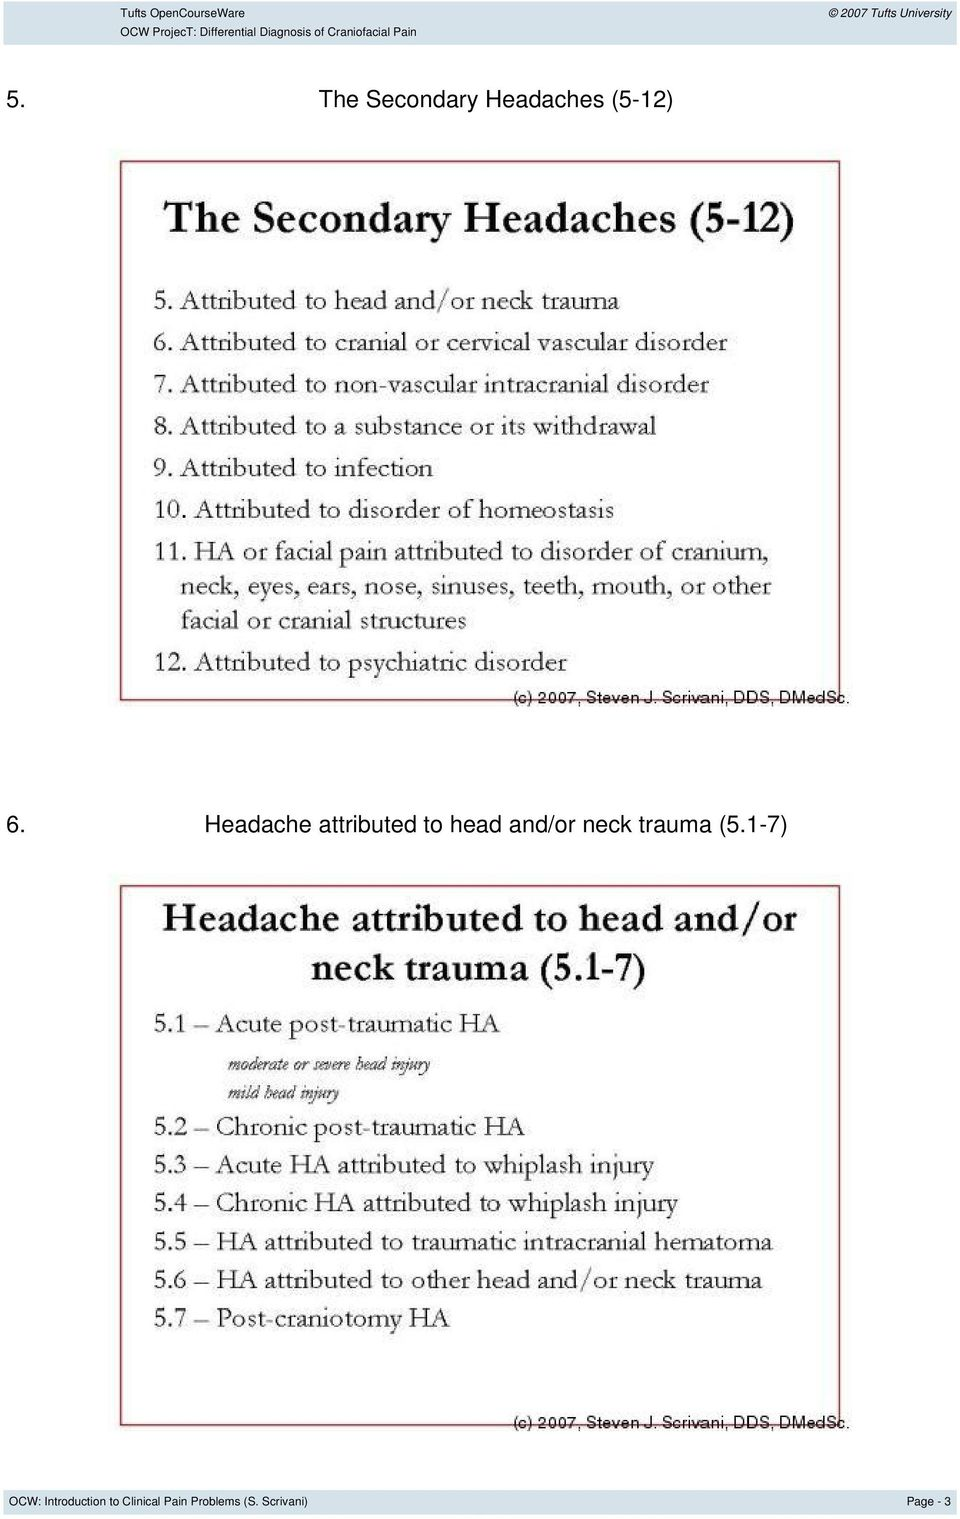 Headache attributed to